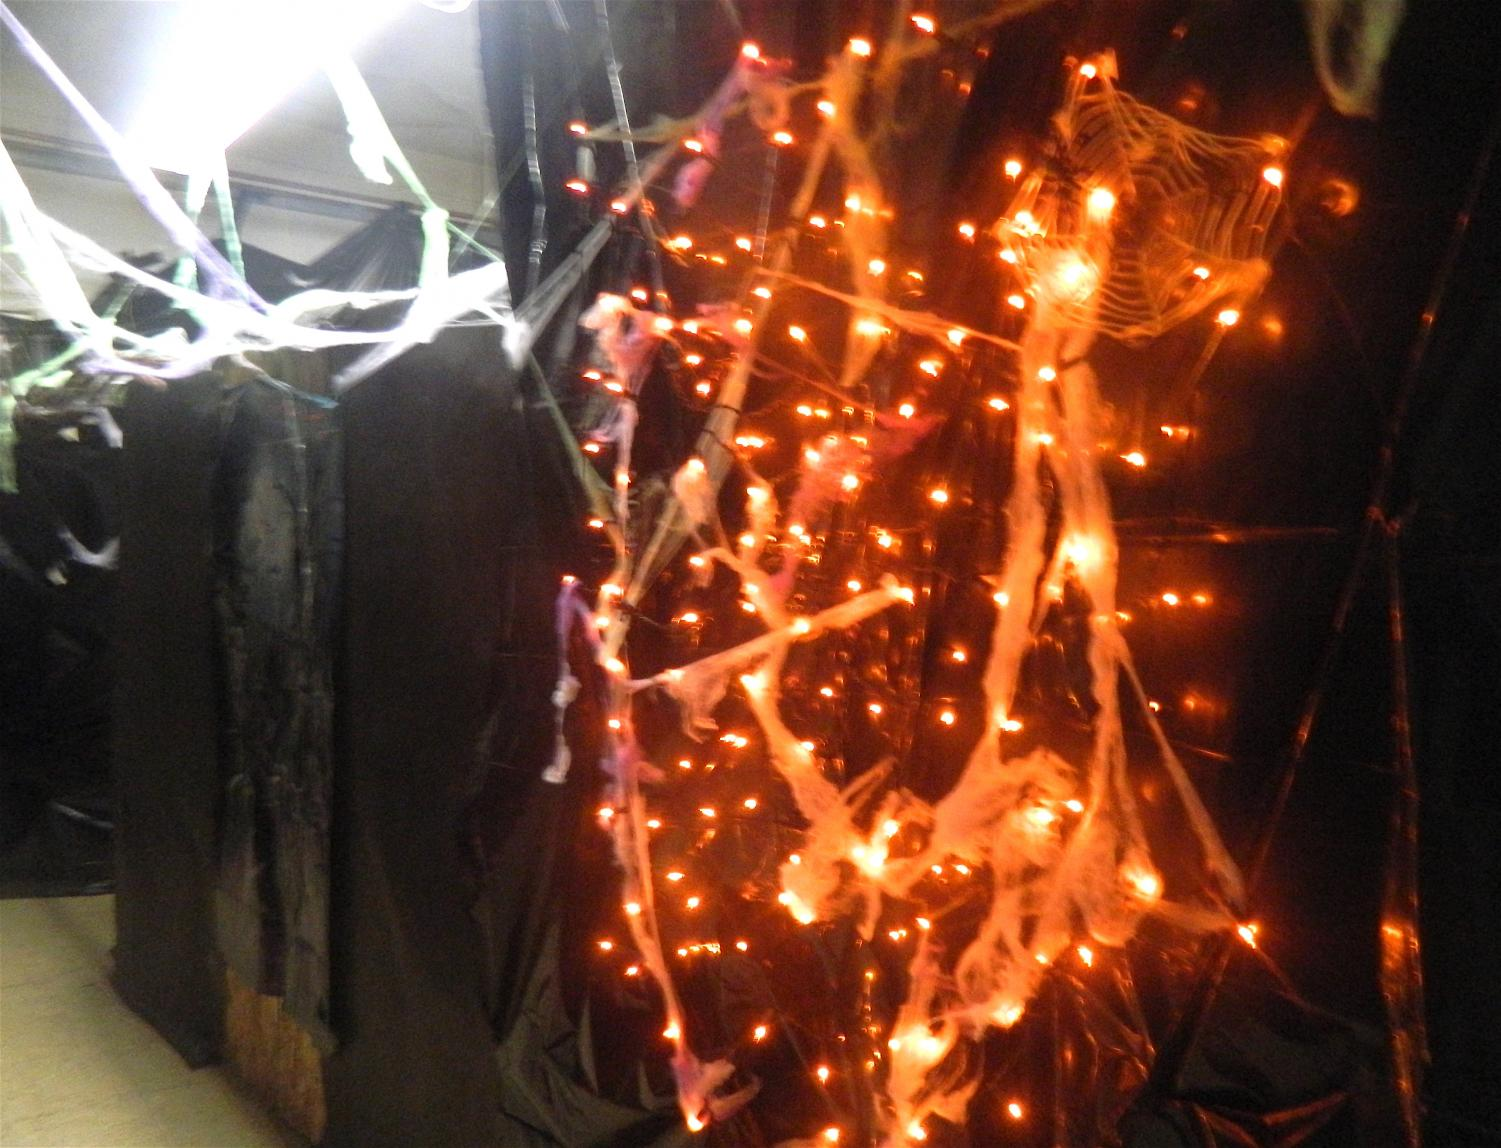 Lights and spiderwebs hang in the basement of Cunniff Elementary School in preparation for visitors to the Haunted House during the annual Halloween Party on Friday, Oct. 27, 2017, from 6-8 p.m.